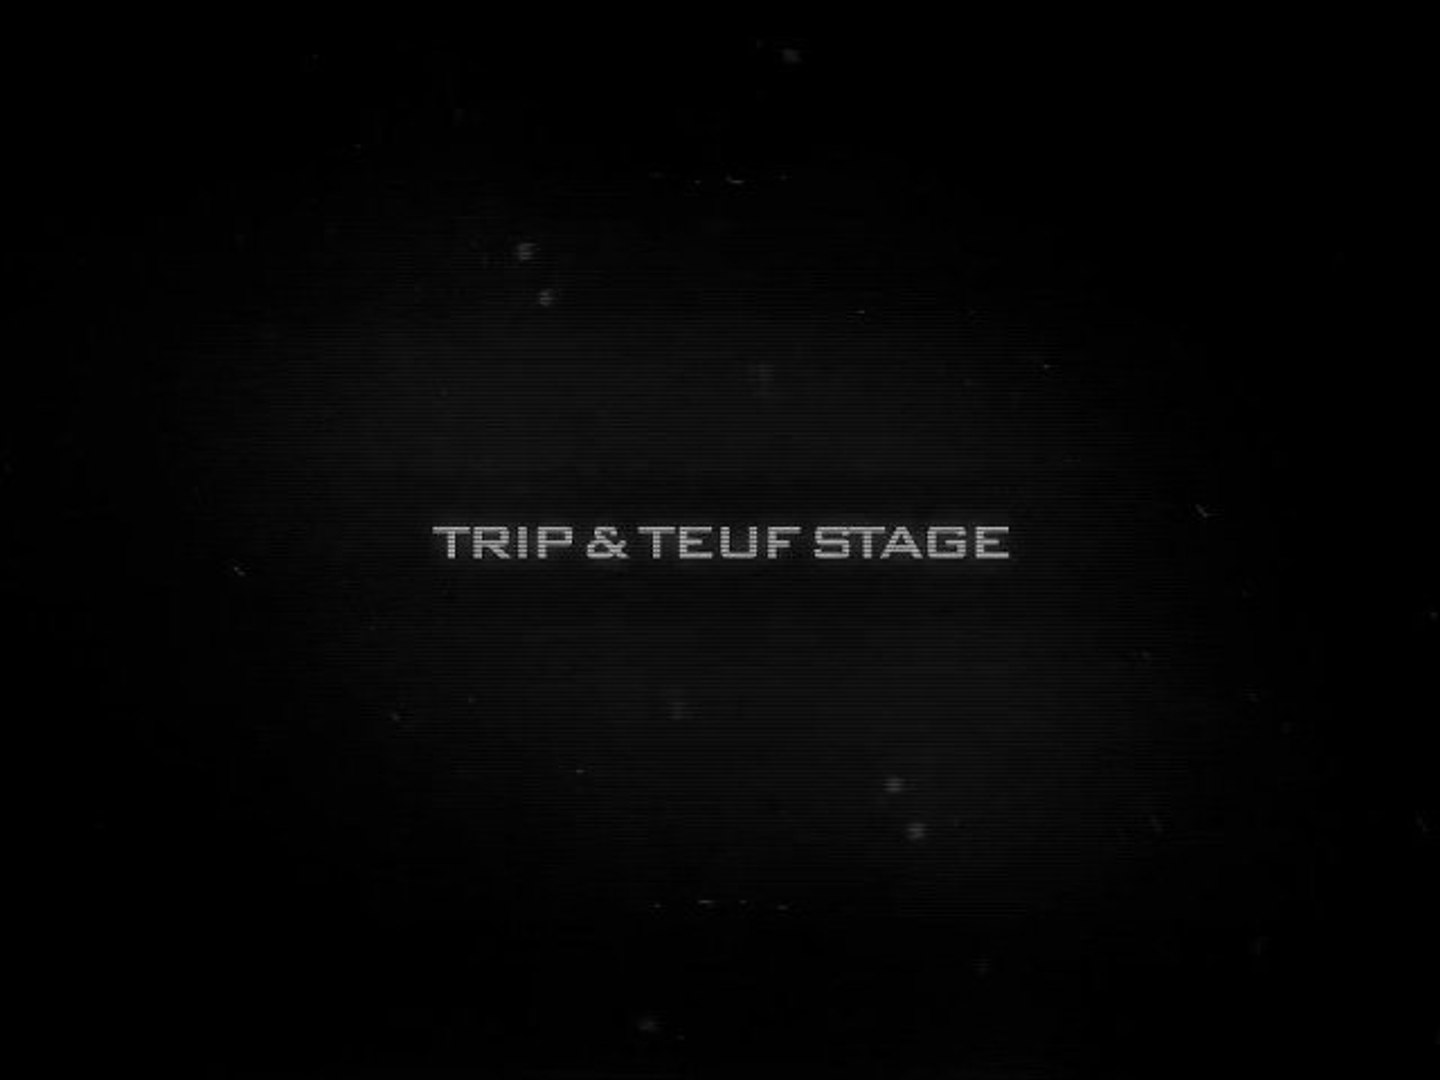 AFTERFILM STAGE TRIP & TEUF @ BLACK BE 2011